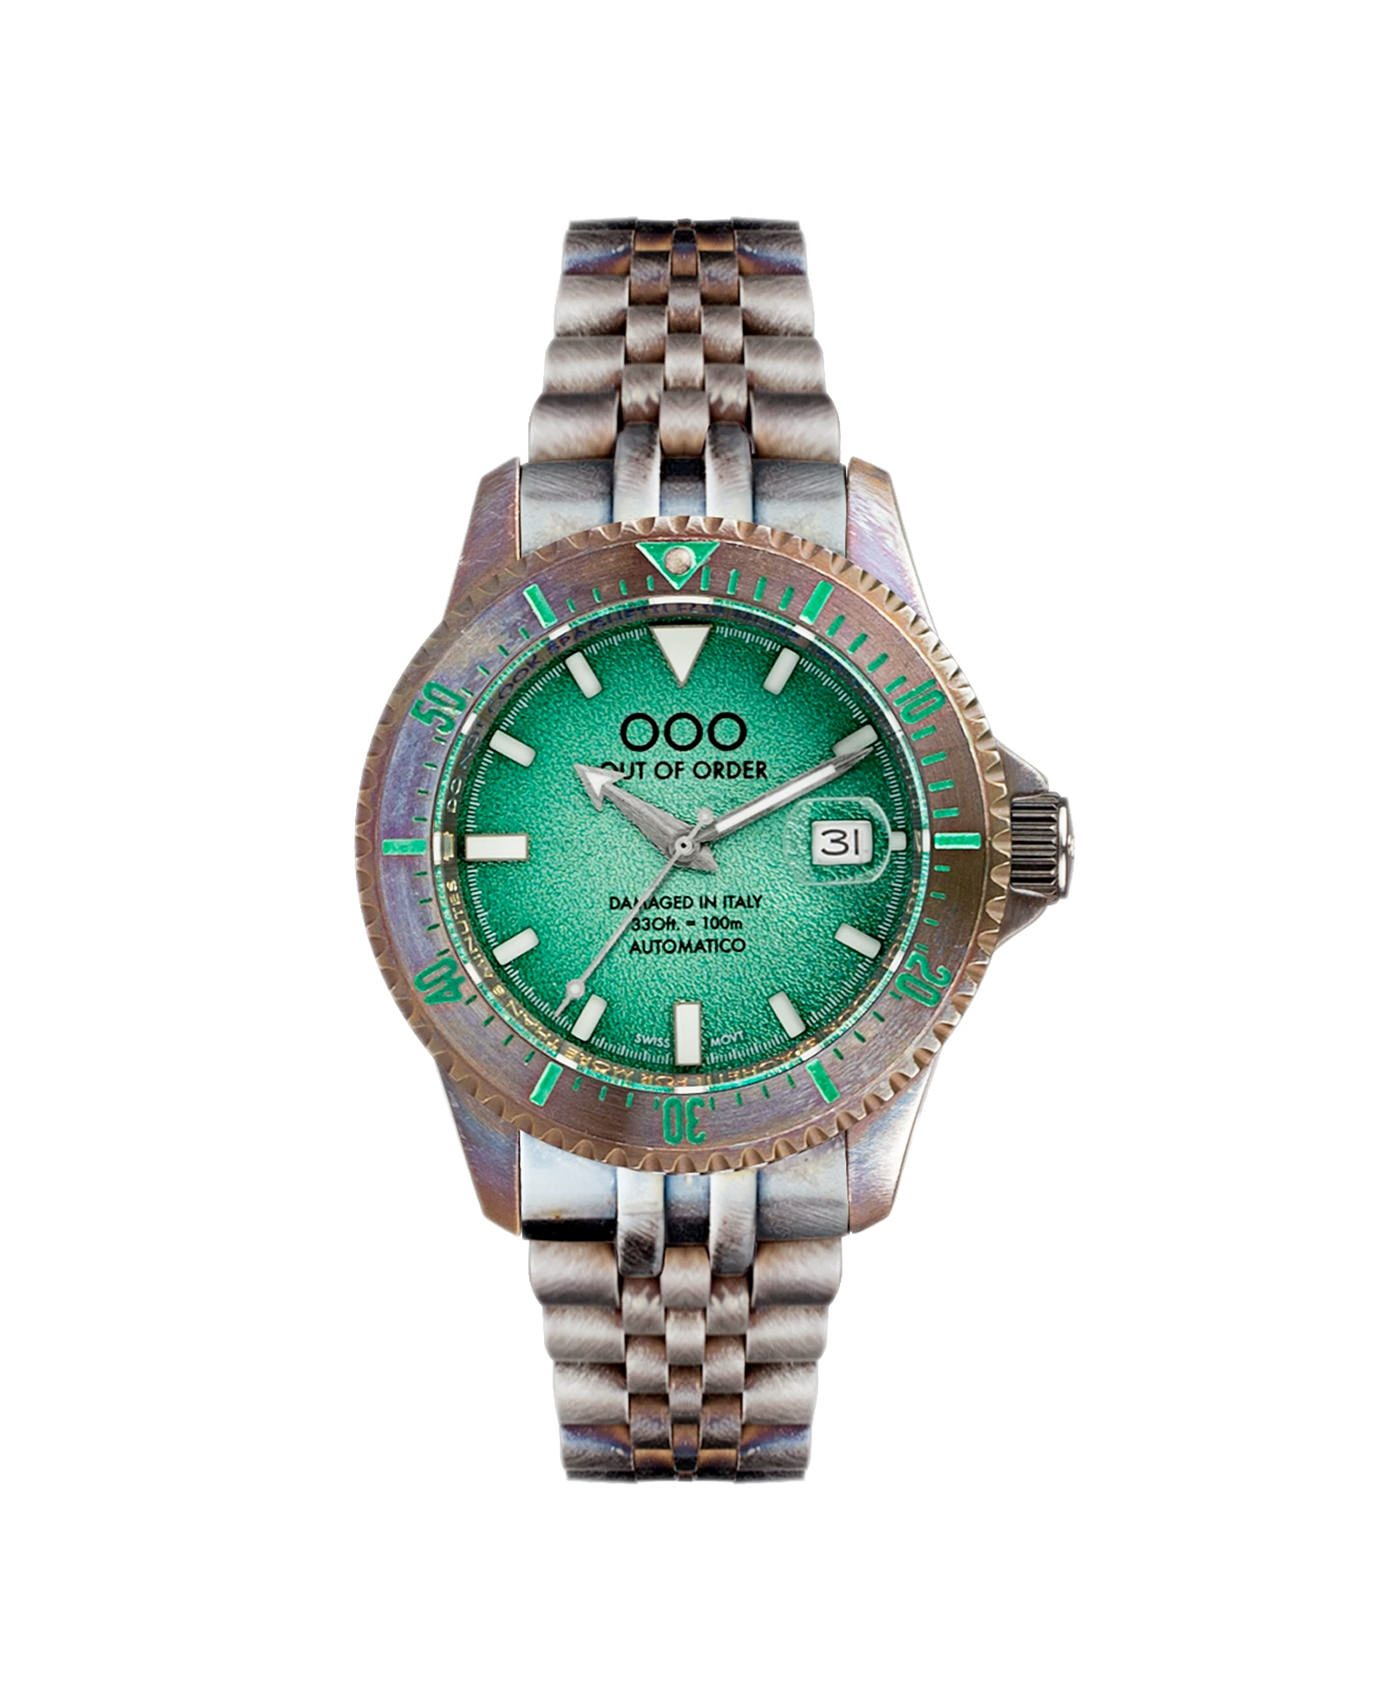 WB Watch Out Of Order green Swiss Automatico front